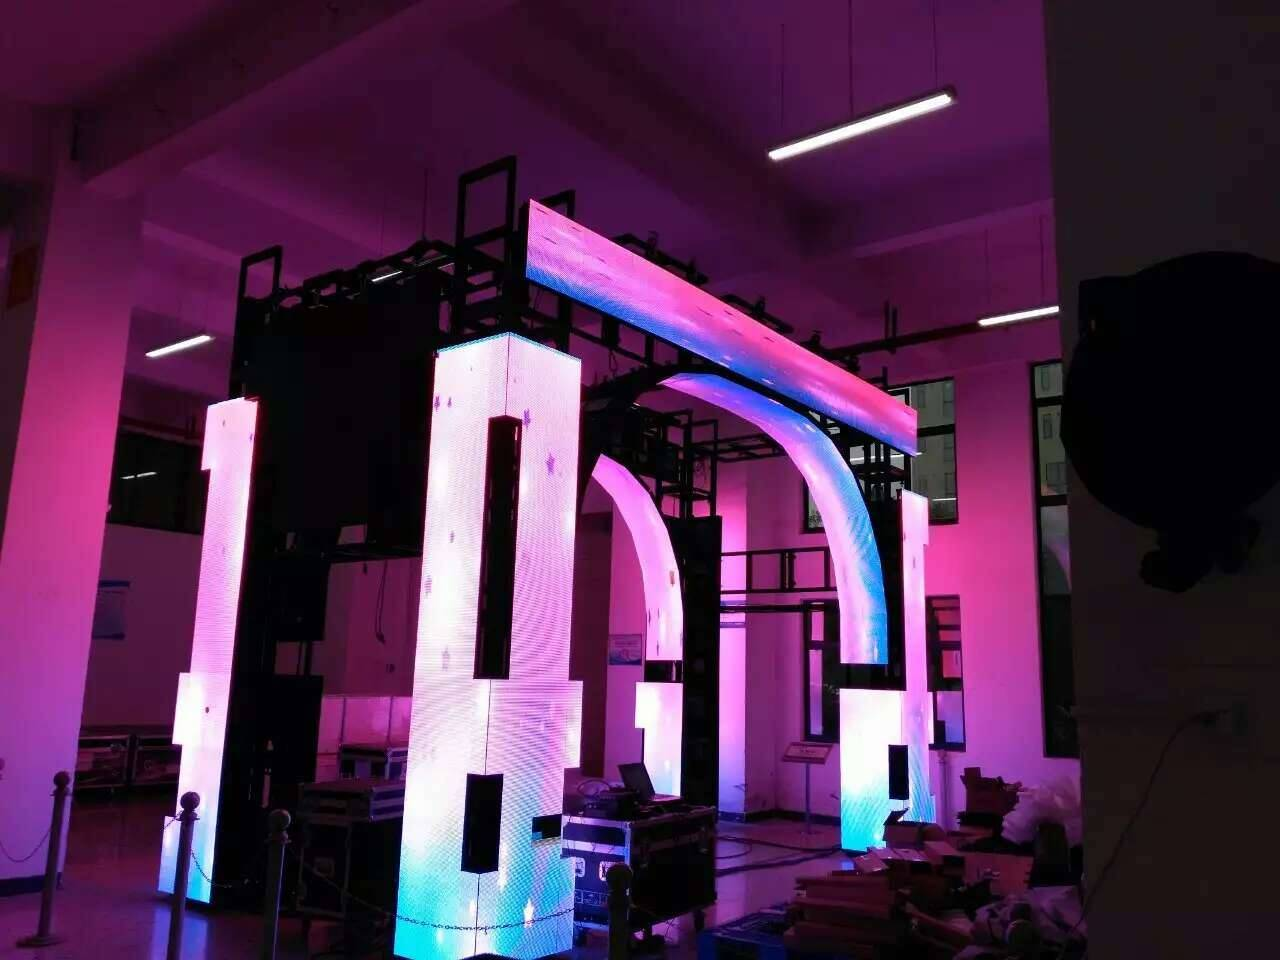 Magic Stage MG6 indoor led display